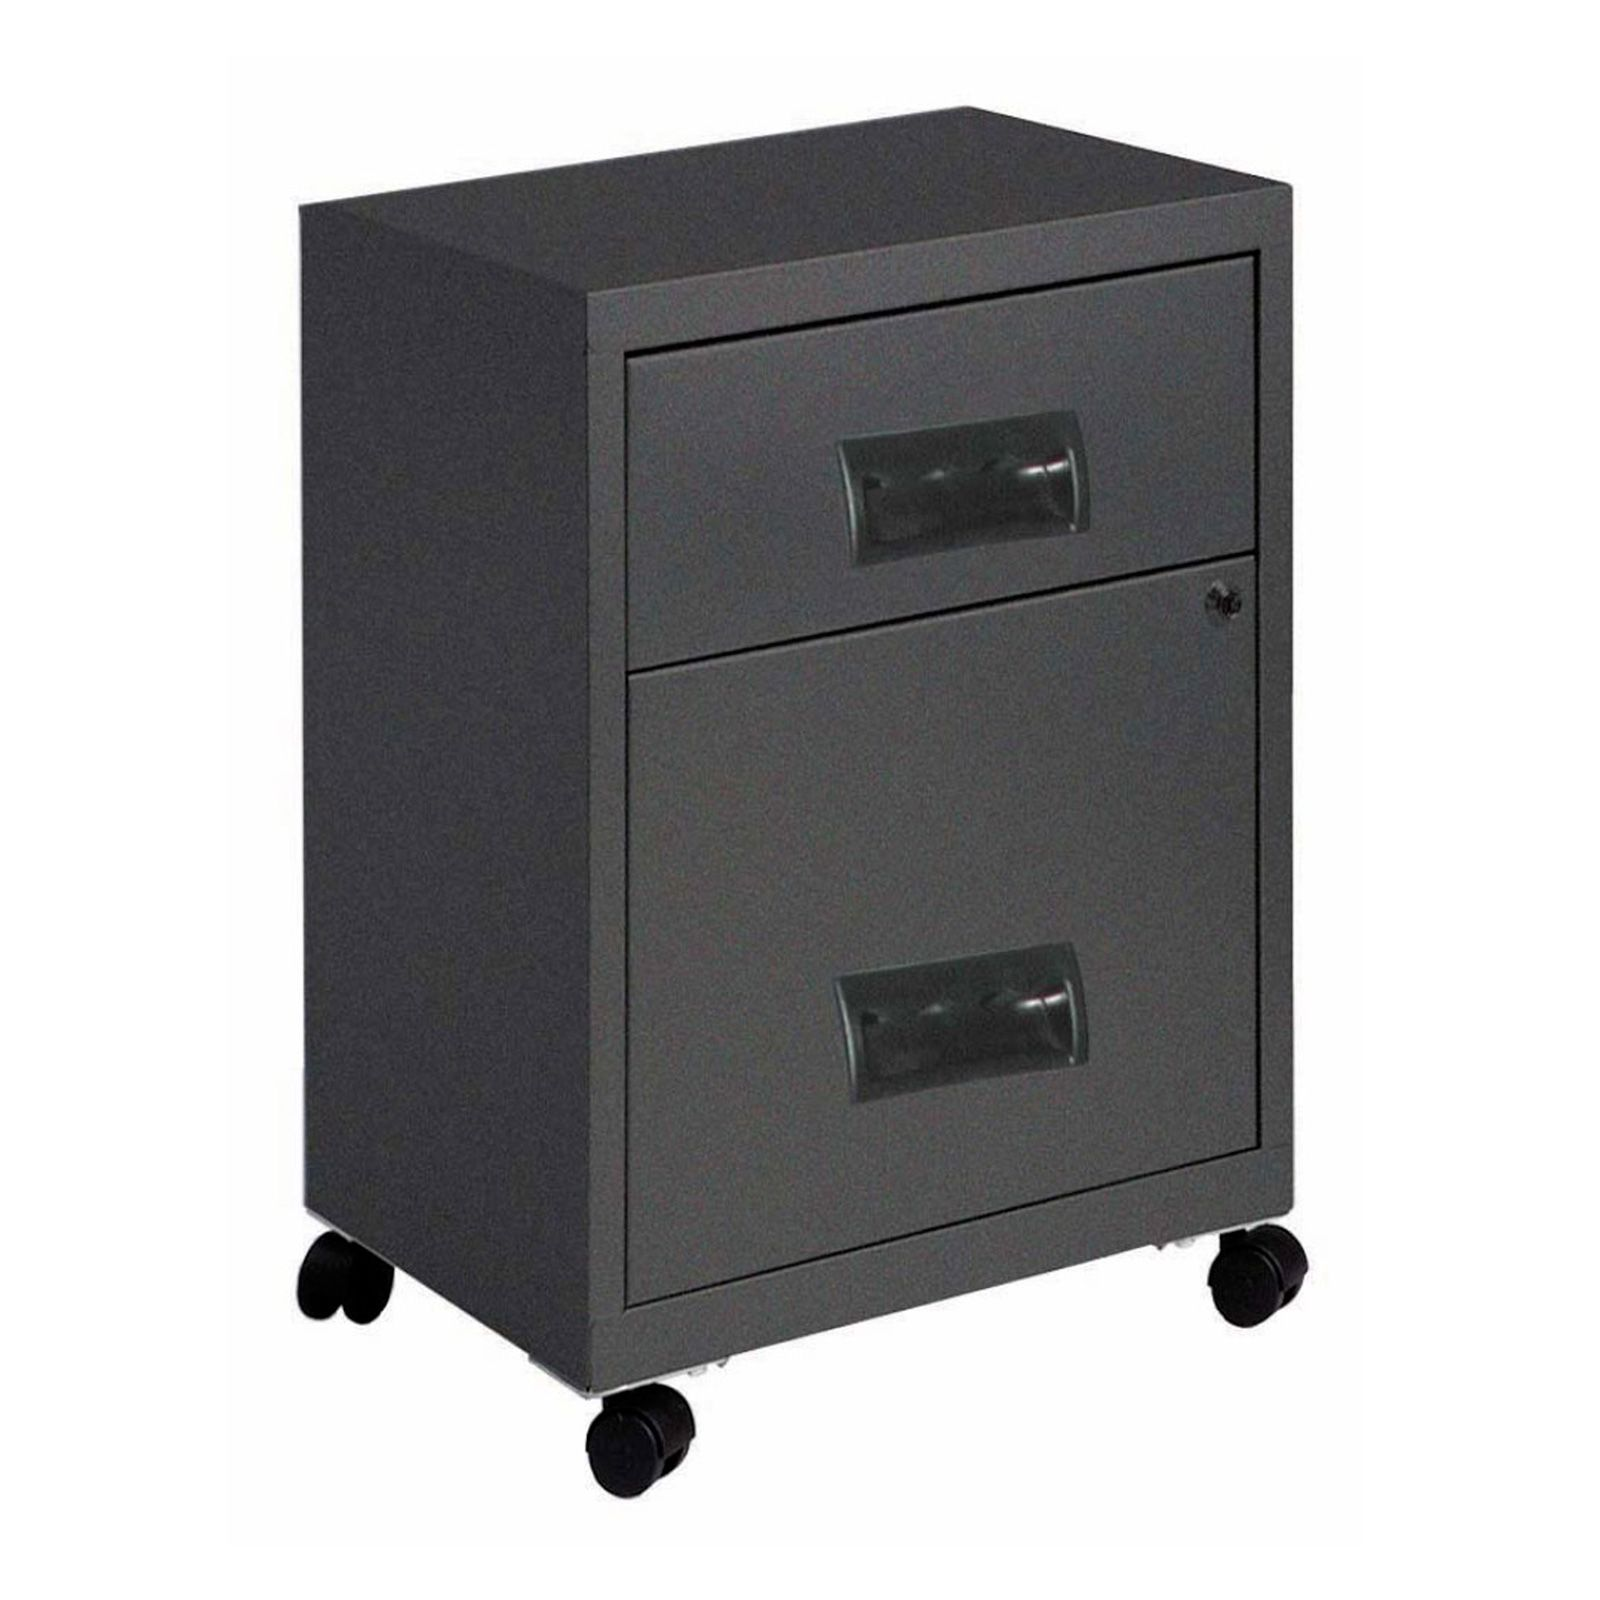 pierre henry caisson anthracite brandalley. Black Bedroom Furniture Sets. Home Design Ideas